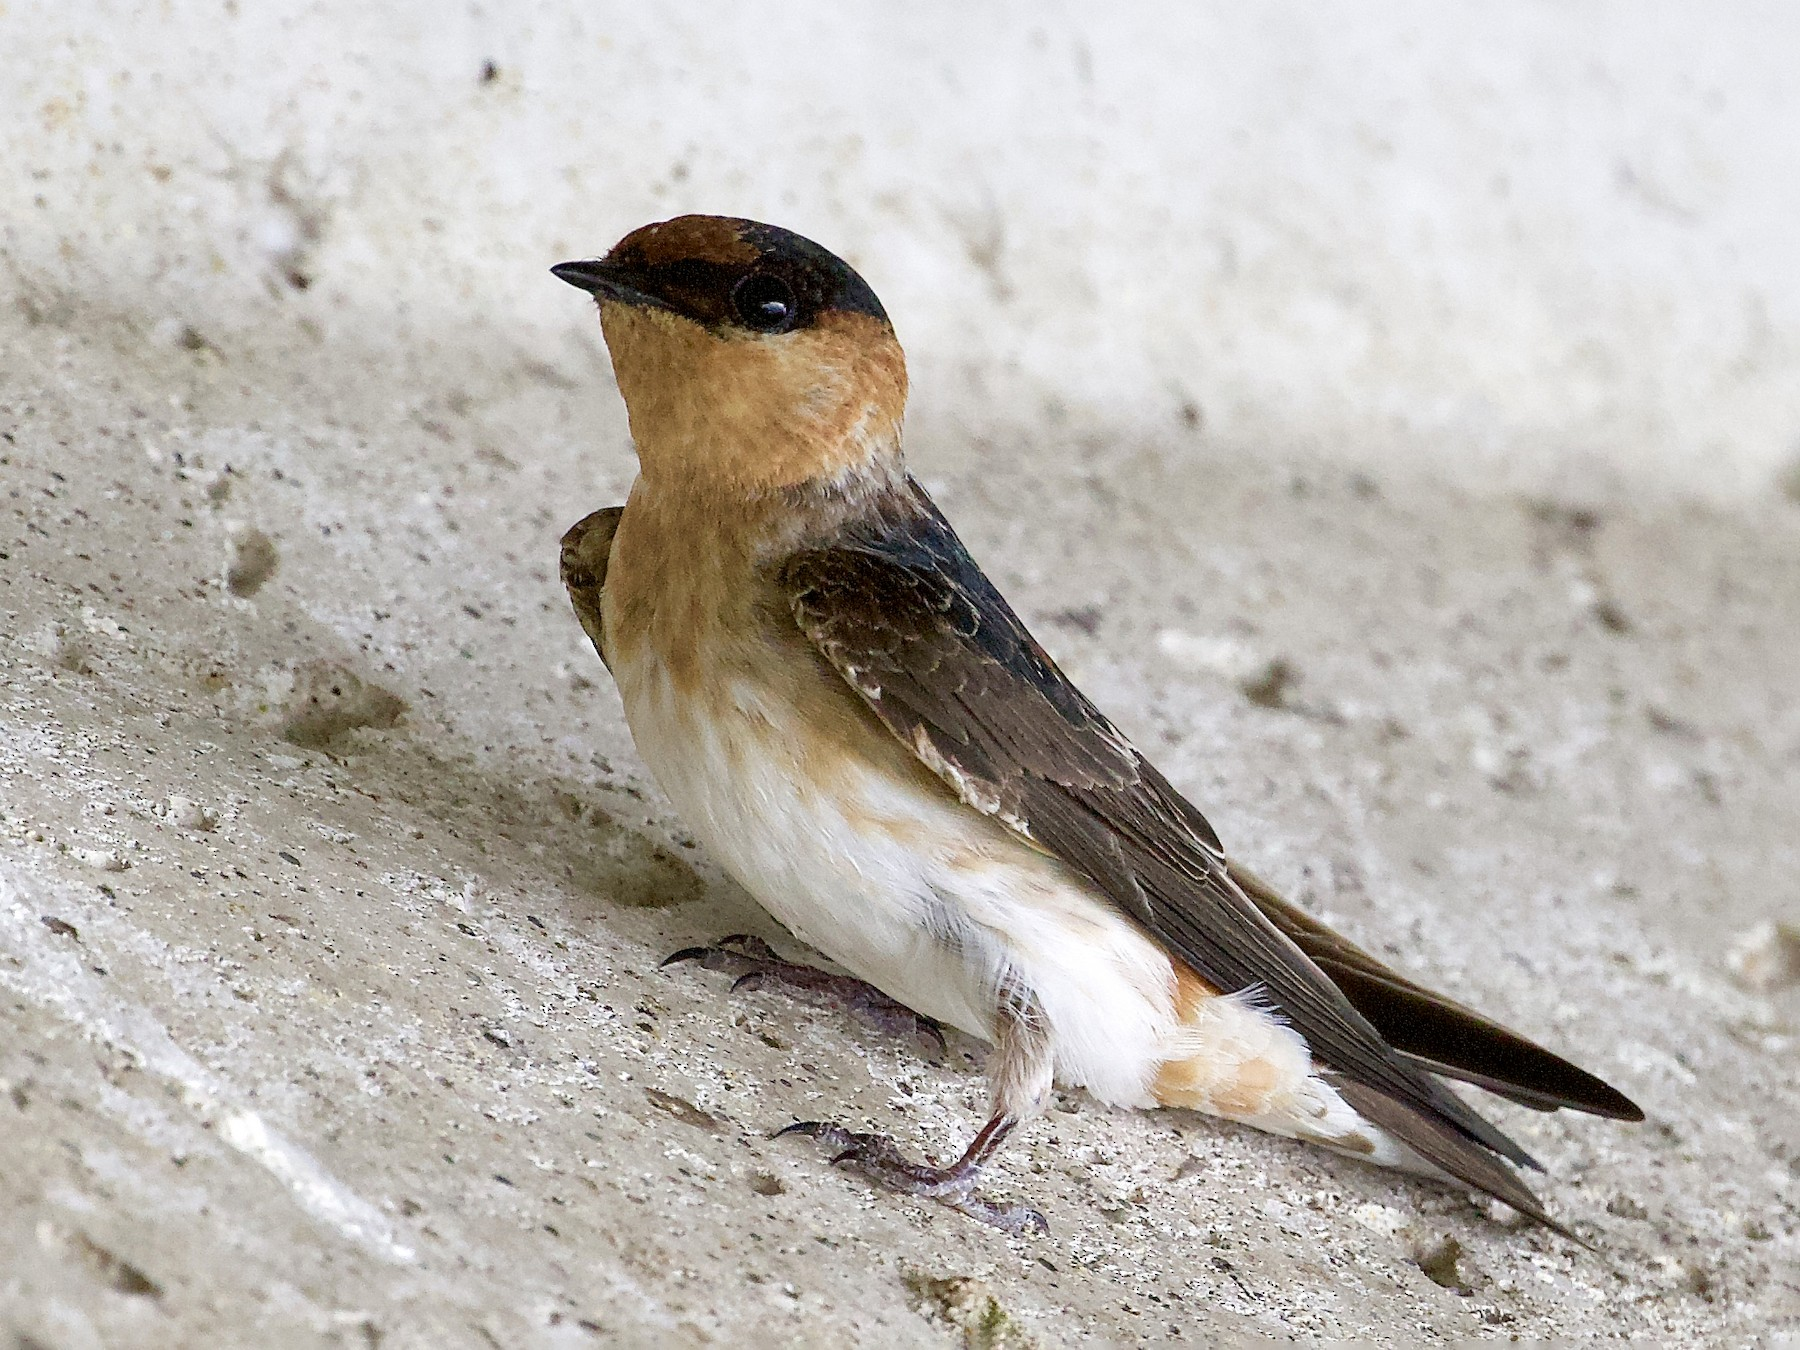 Cave Swallow - Holly Merker